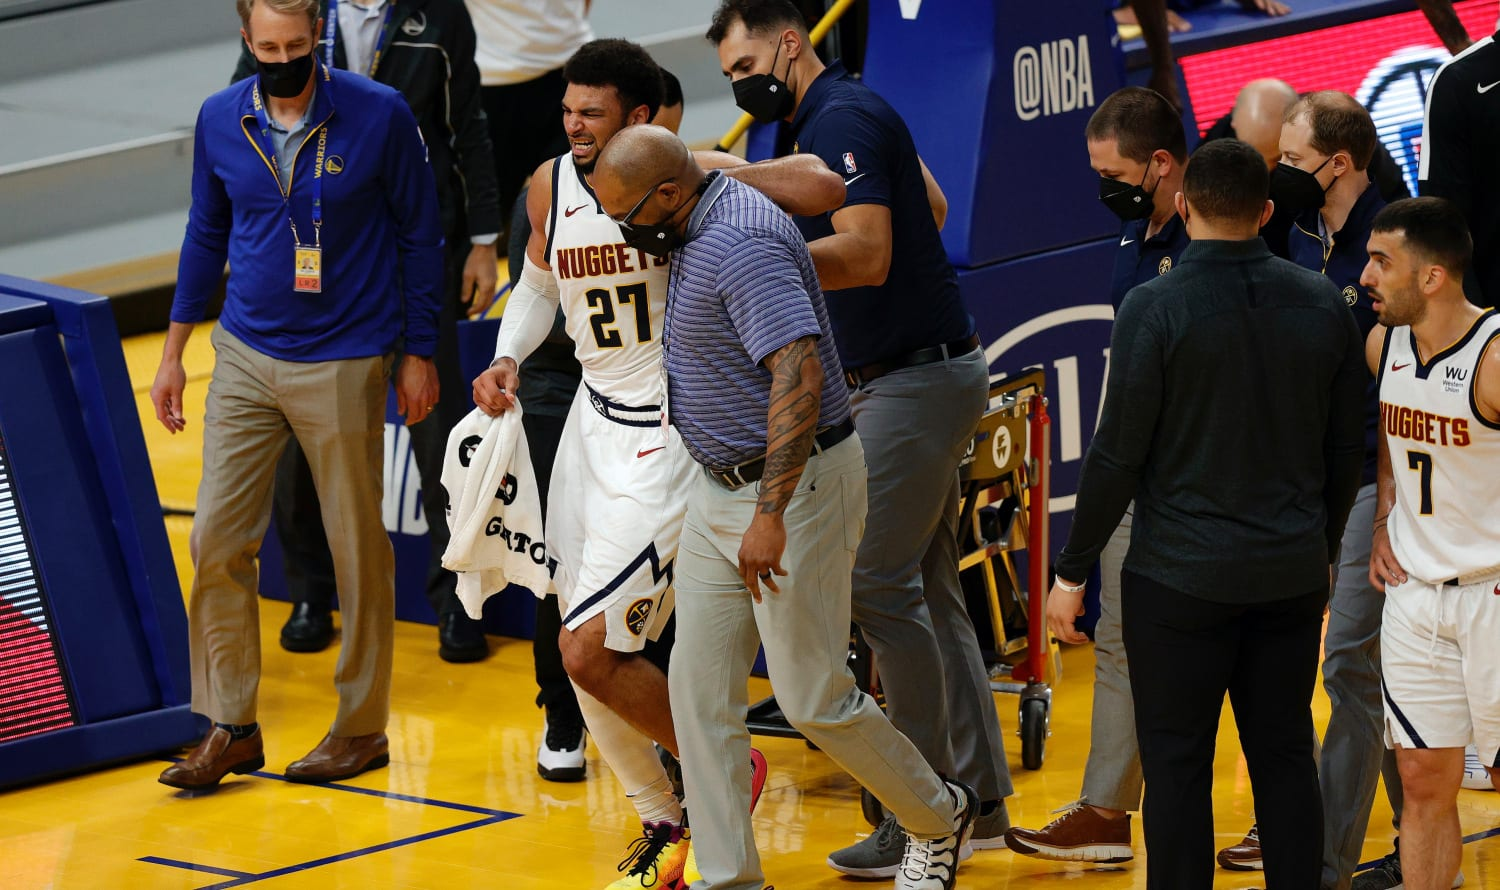 Nuggets star Jamal Murray being helped off the court